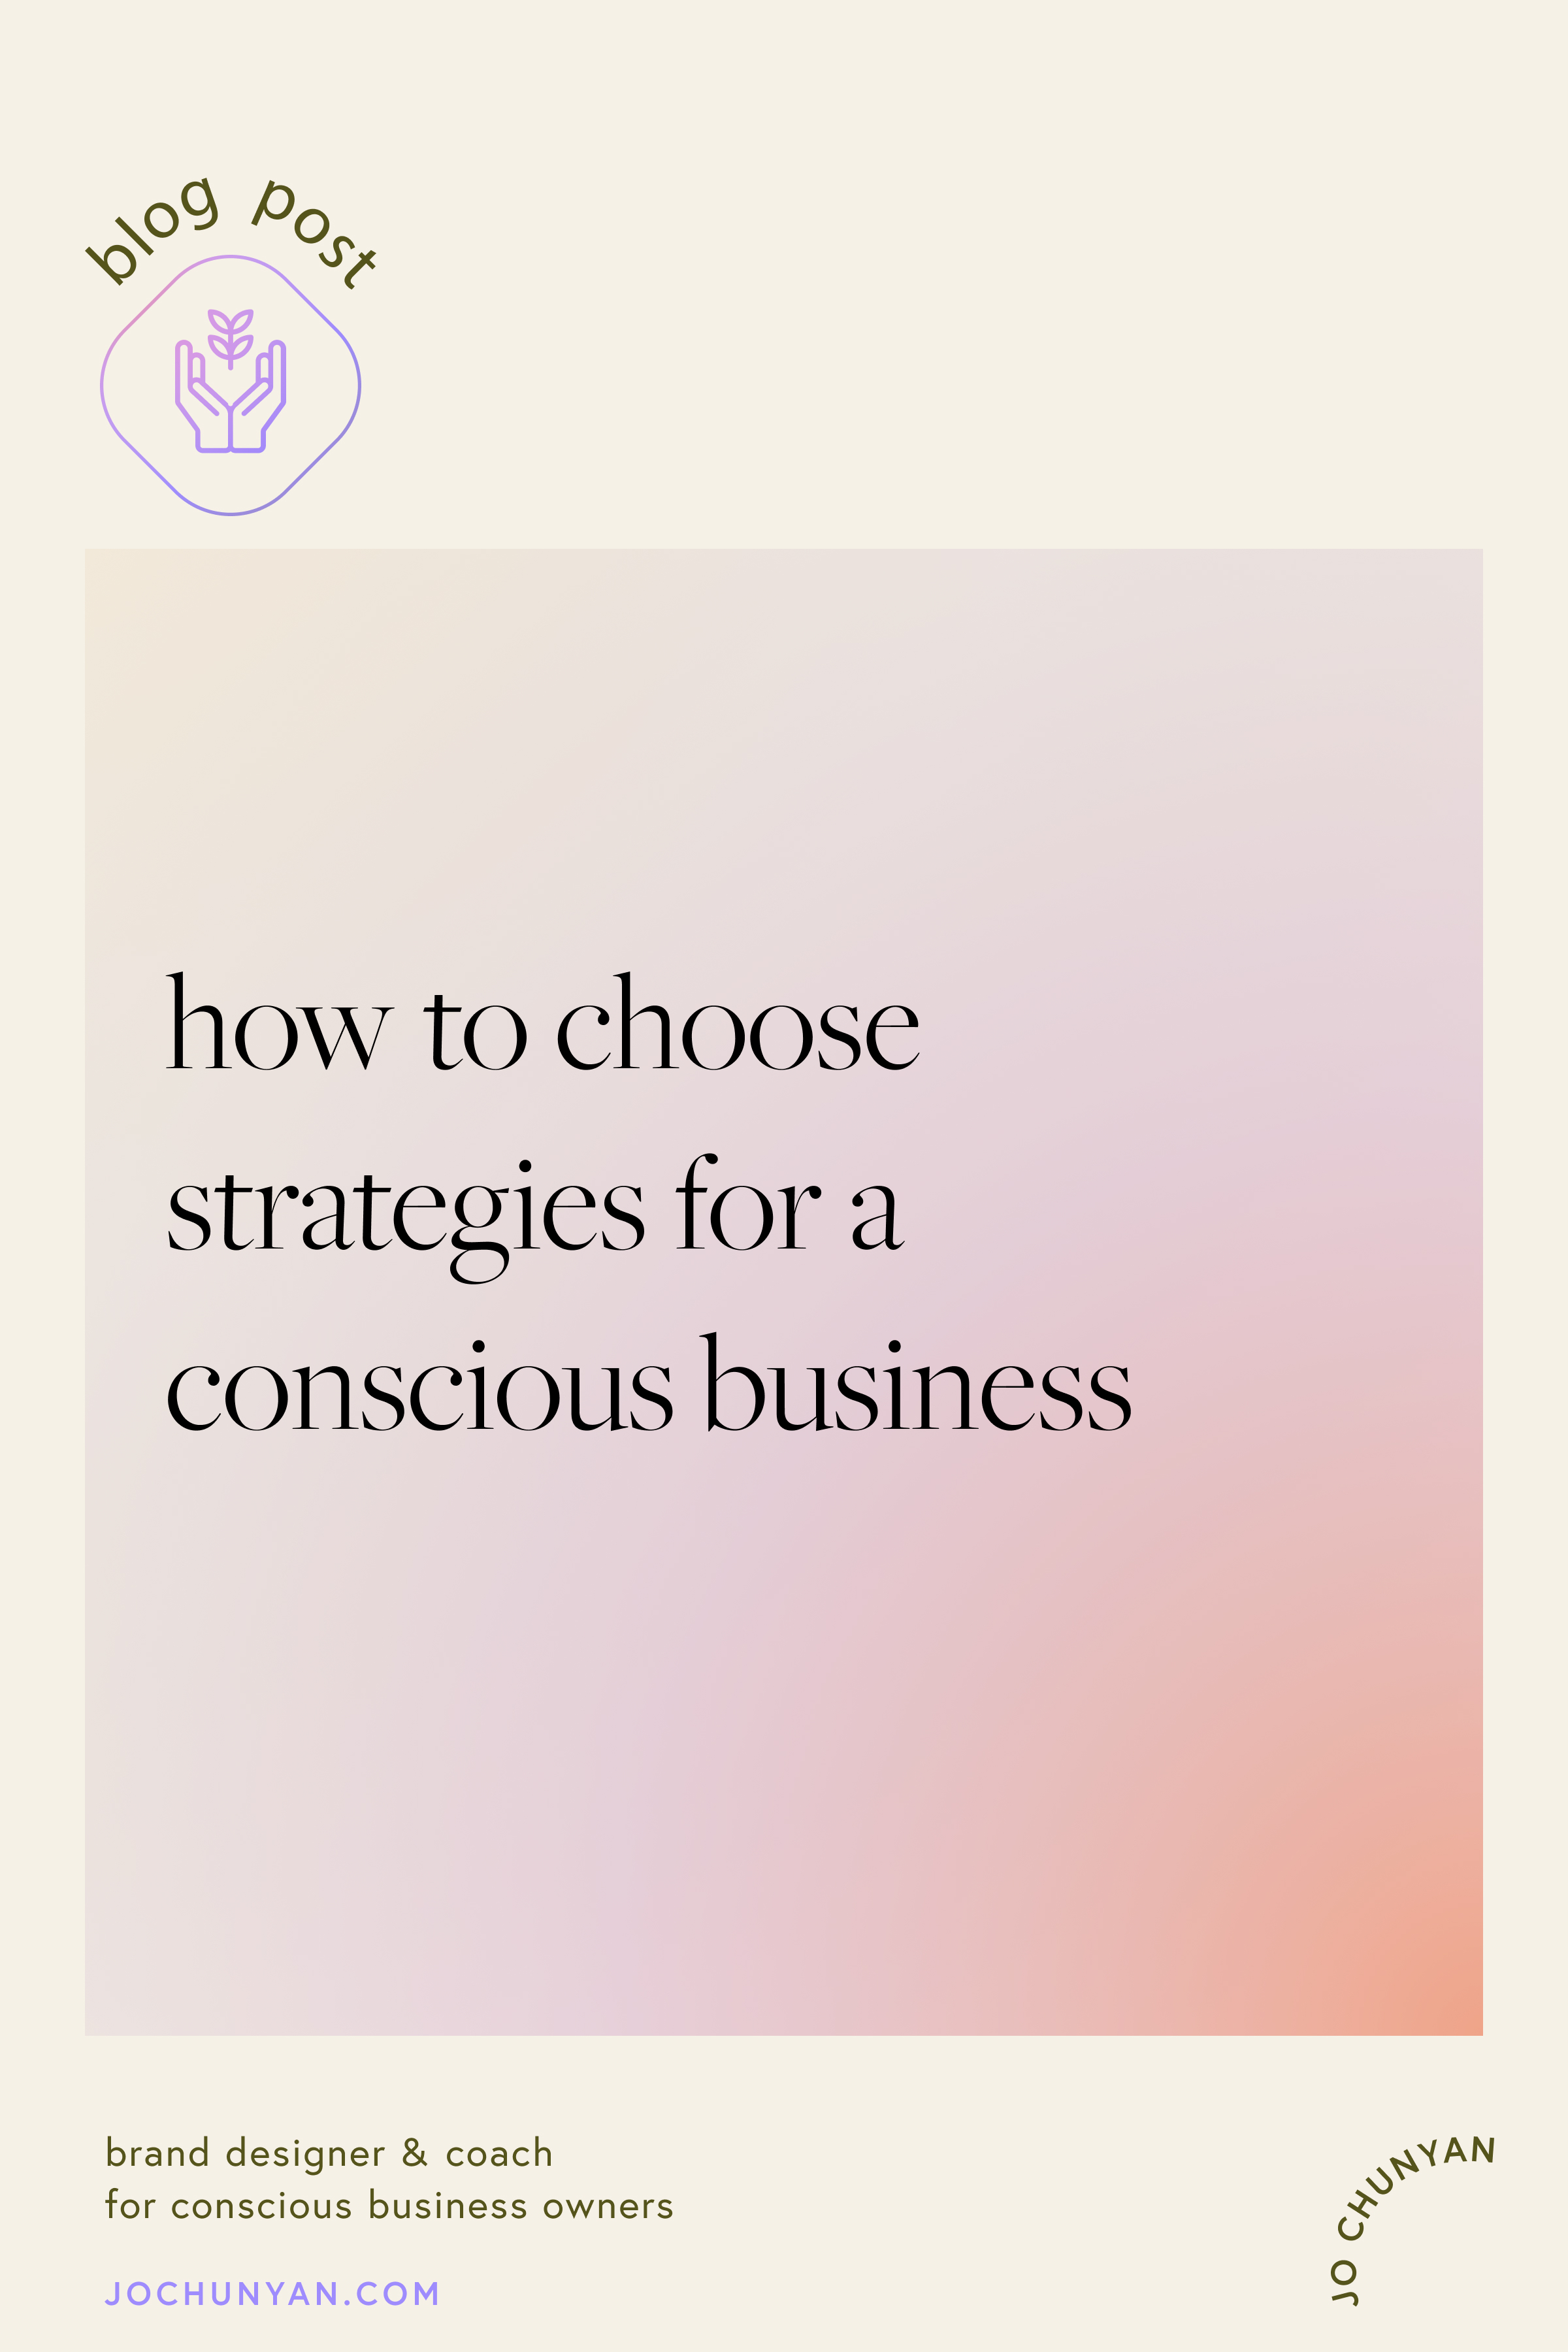 How to choose the right strategies for building a conscious business